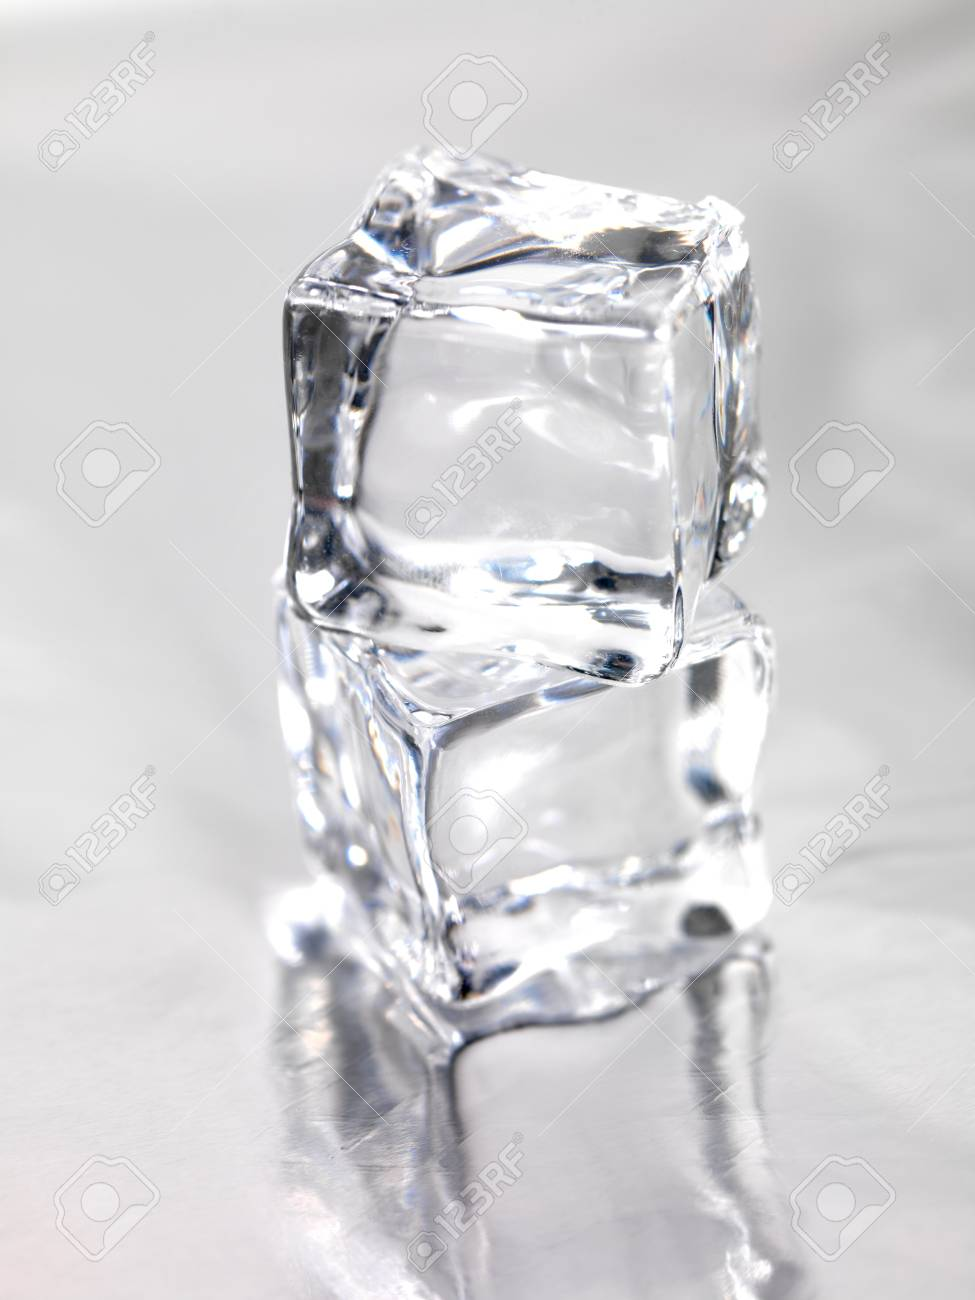 Tremendous Frozen Ice Cubes Isolated On A Kitchen Bench Pdpeps Interior Chair Design Pdpepsorg